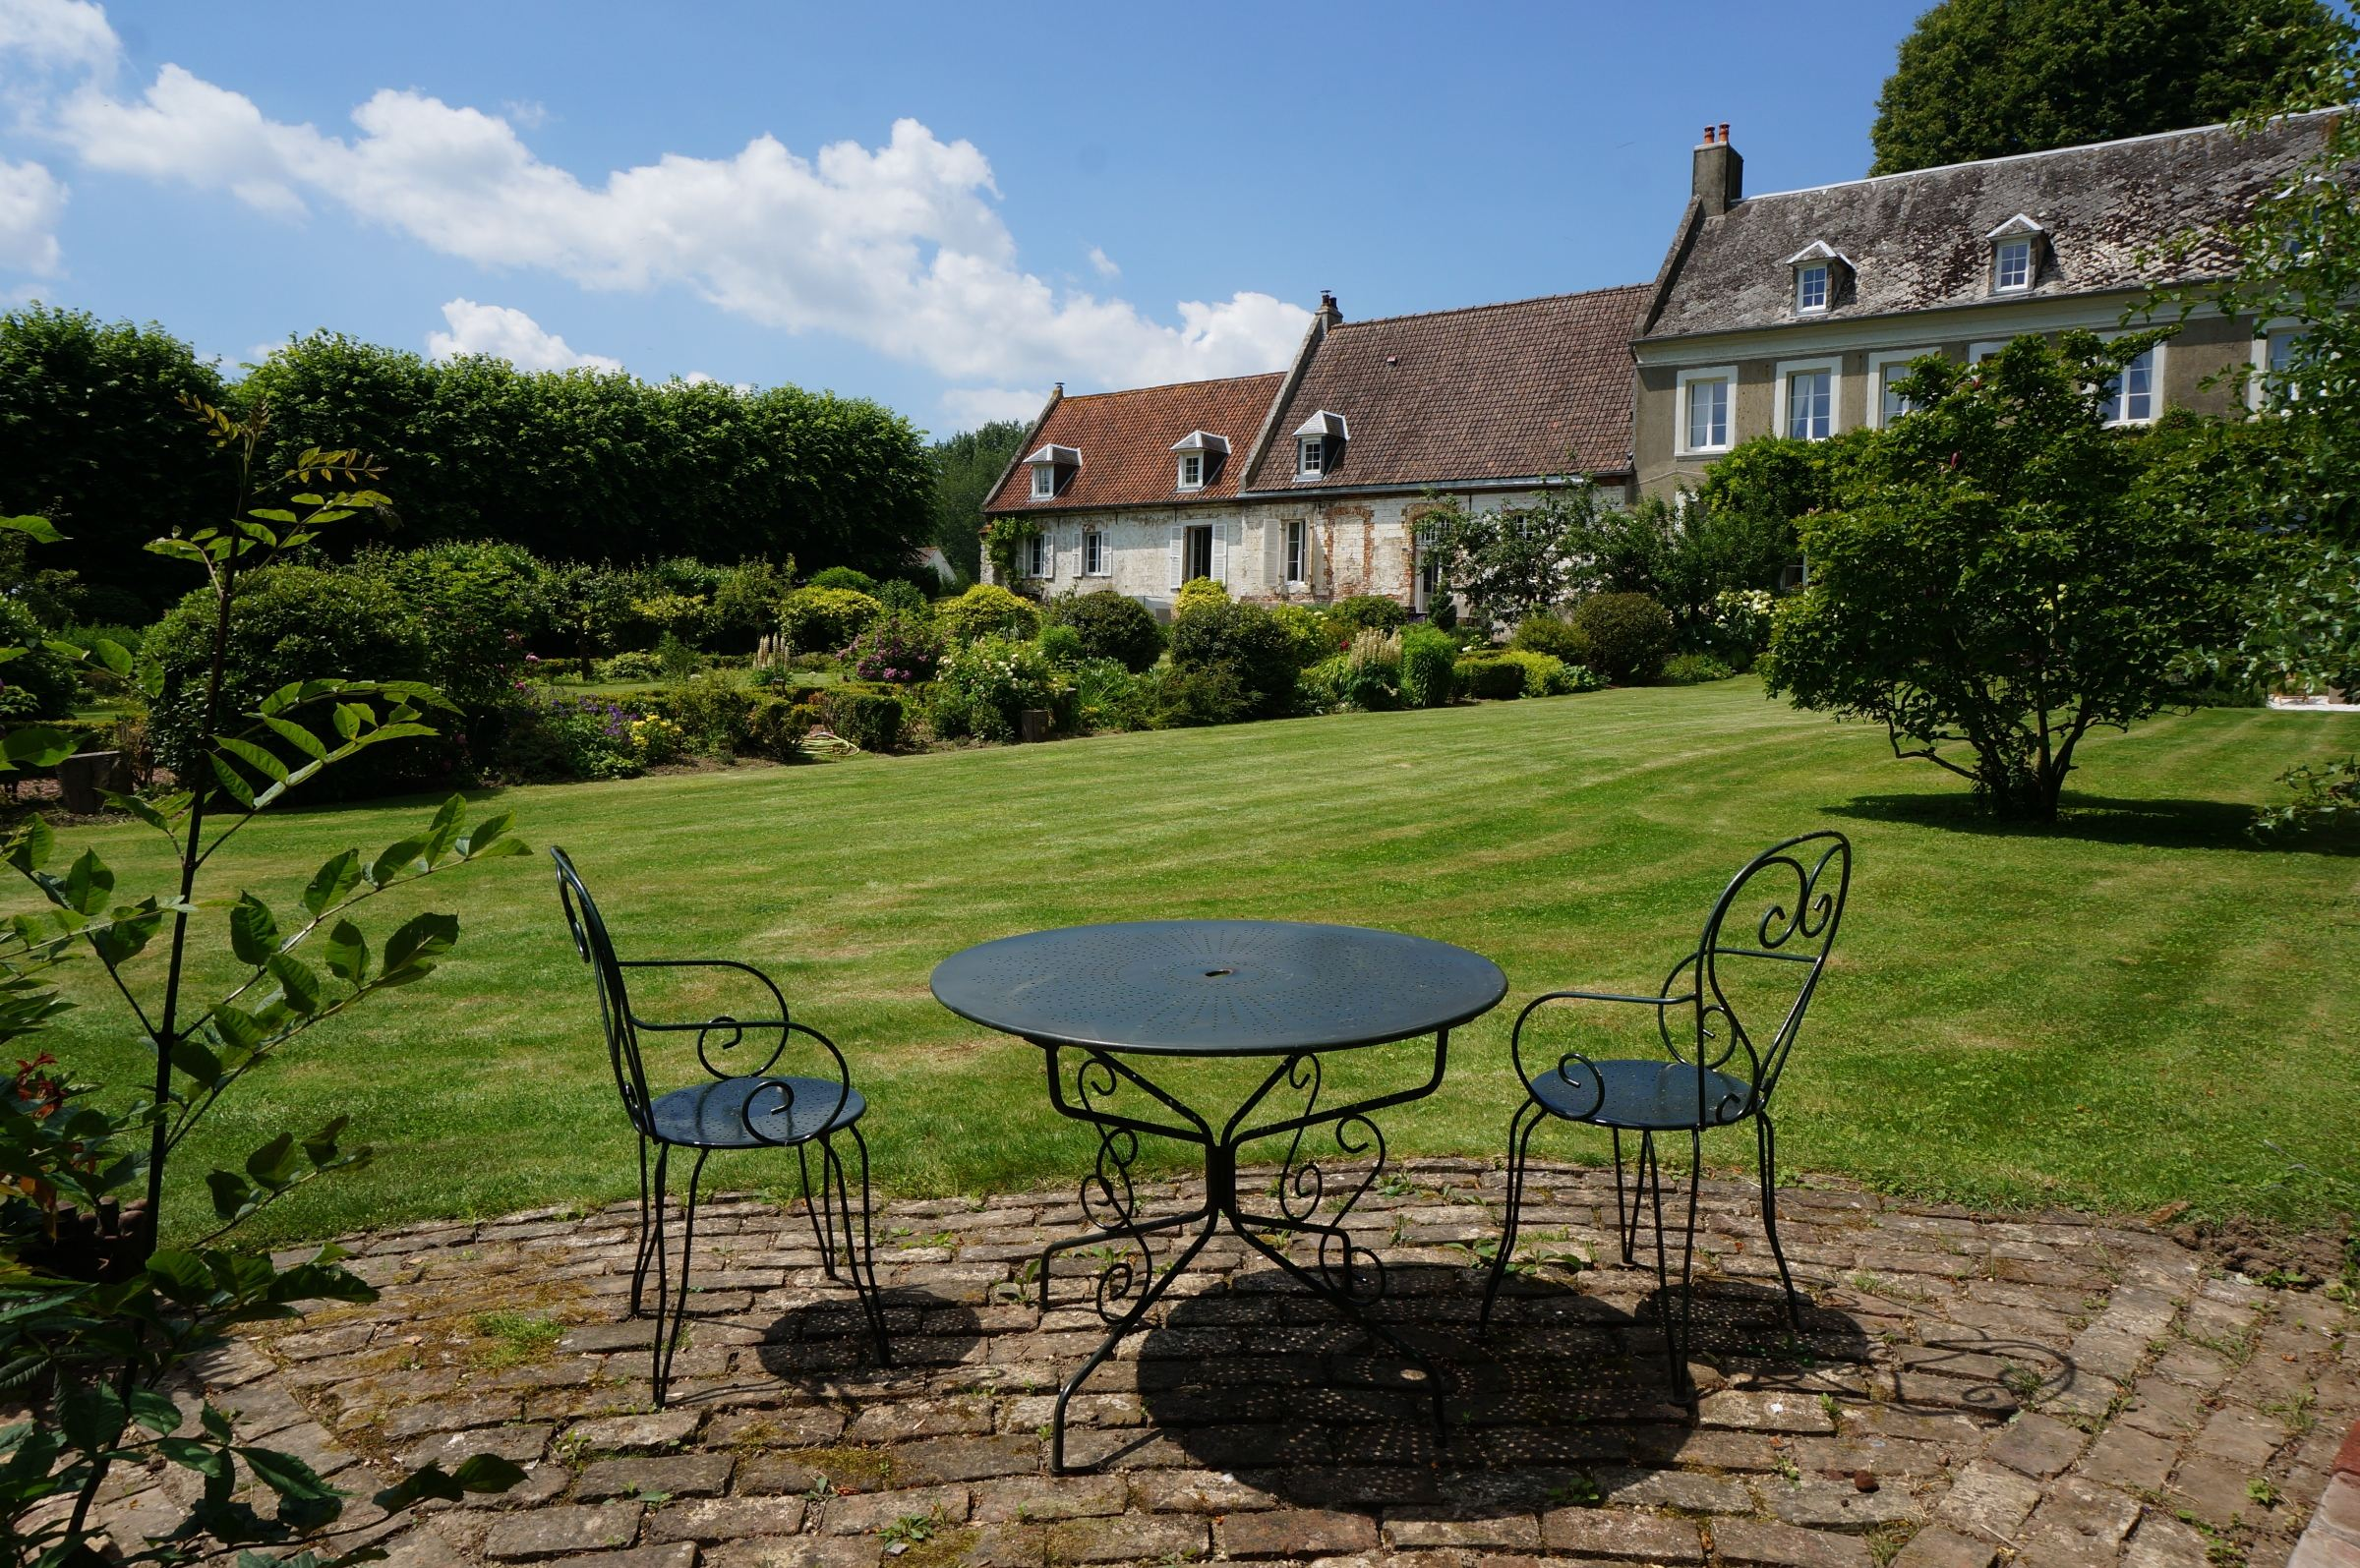 Property For Sale at MONTREUIL nearby, renovated Manor 420 m2. 18th on 2.7 Ha